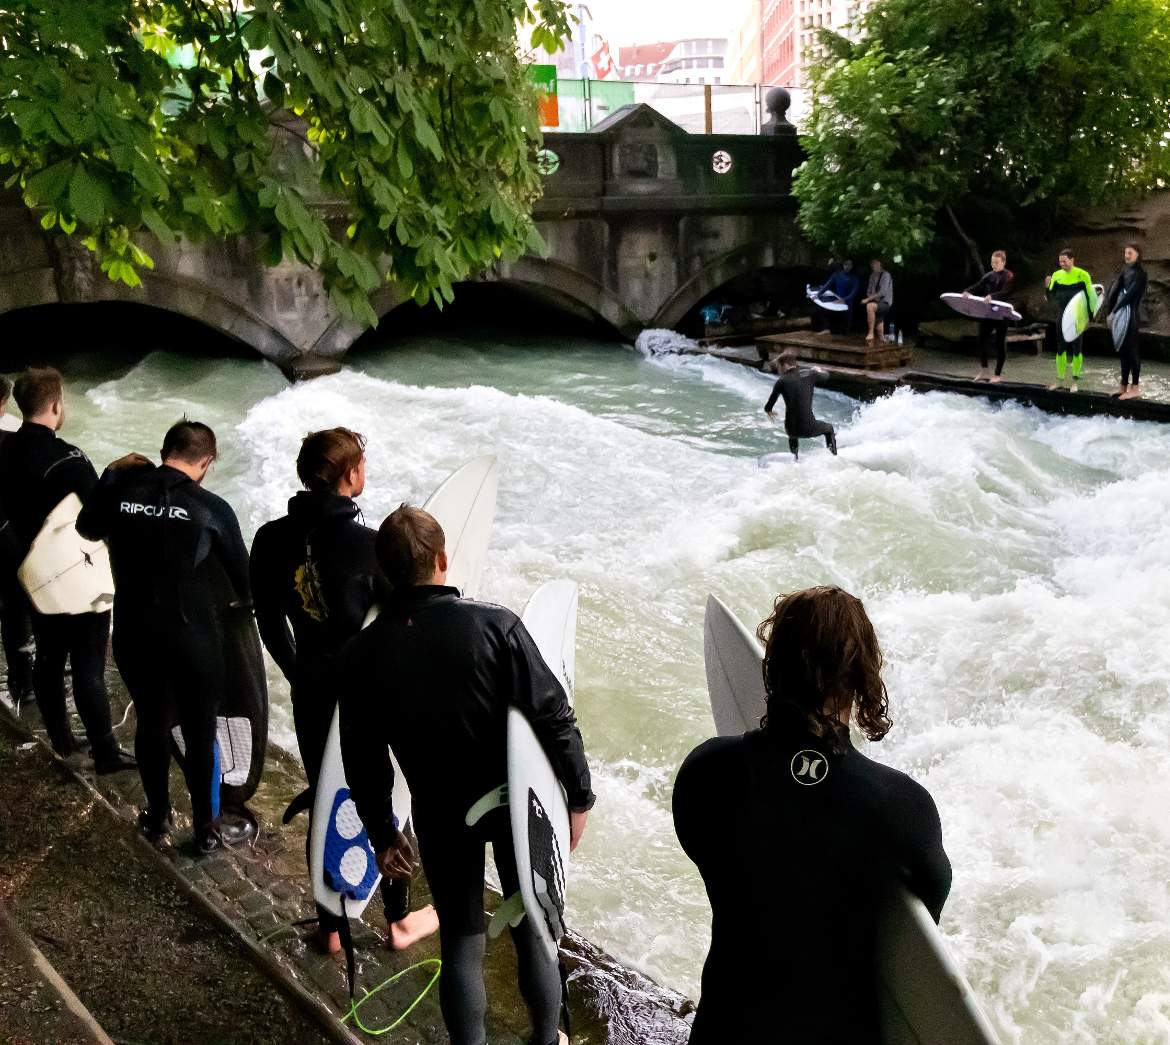 Englischer Garten Surfen Frisch Surf You Can Do It In the Englischer Garten In Munich Ecobnb